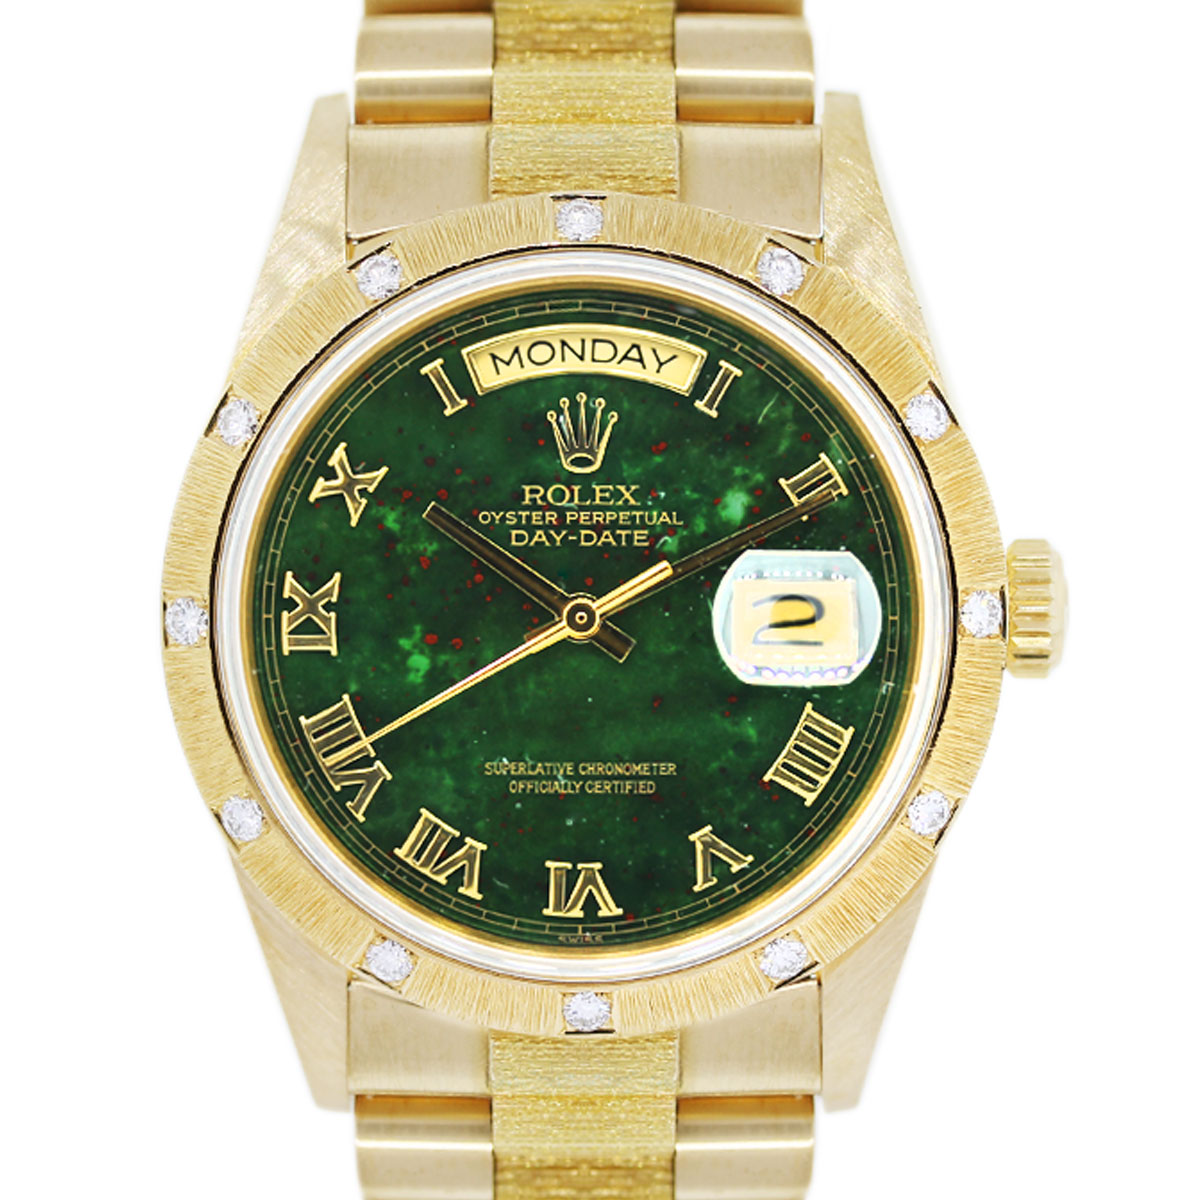 Bloodstone Rolex Mens Watch